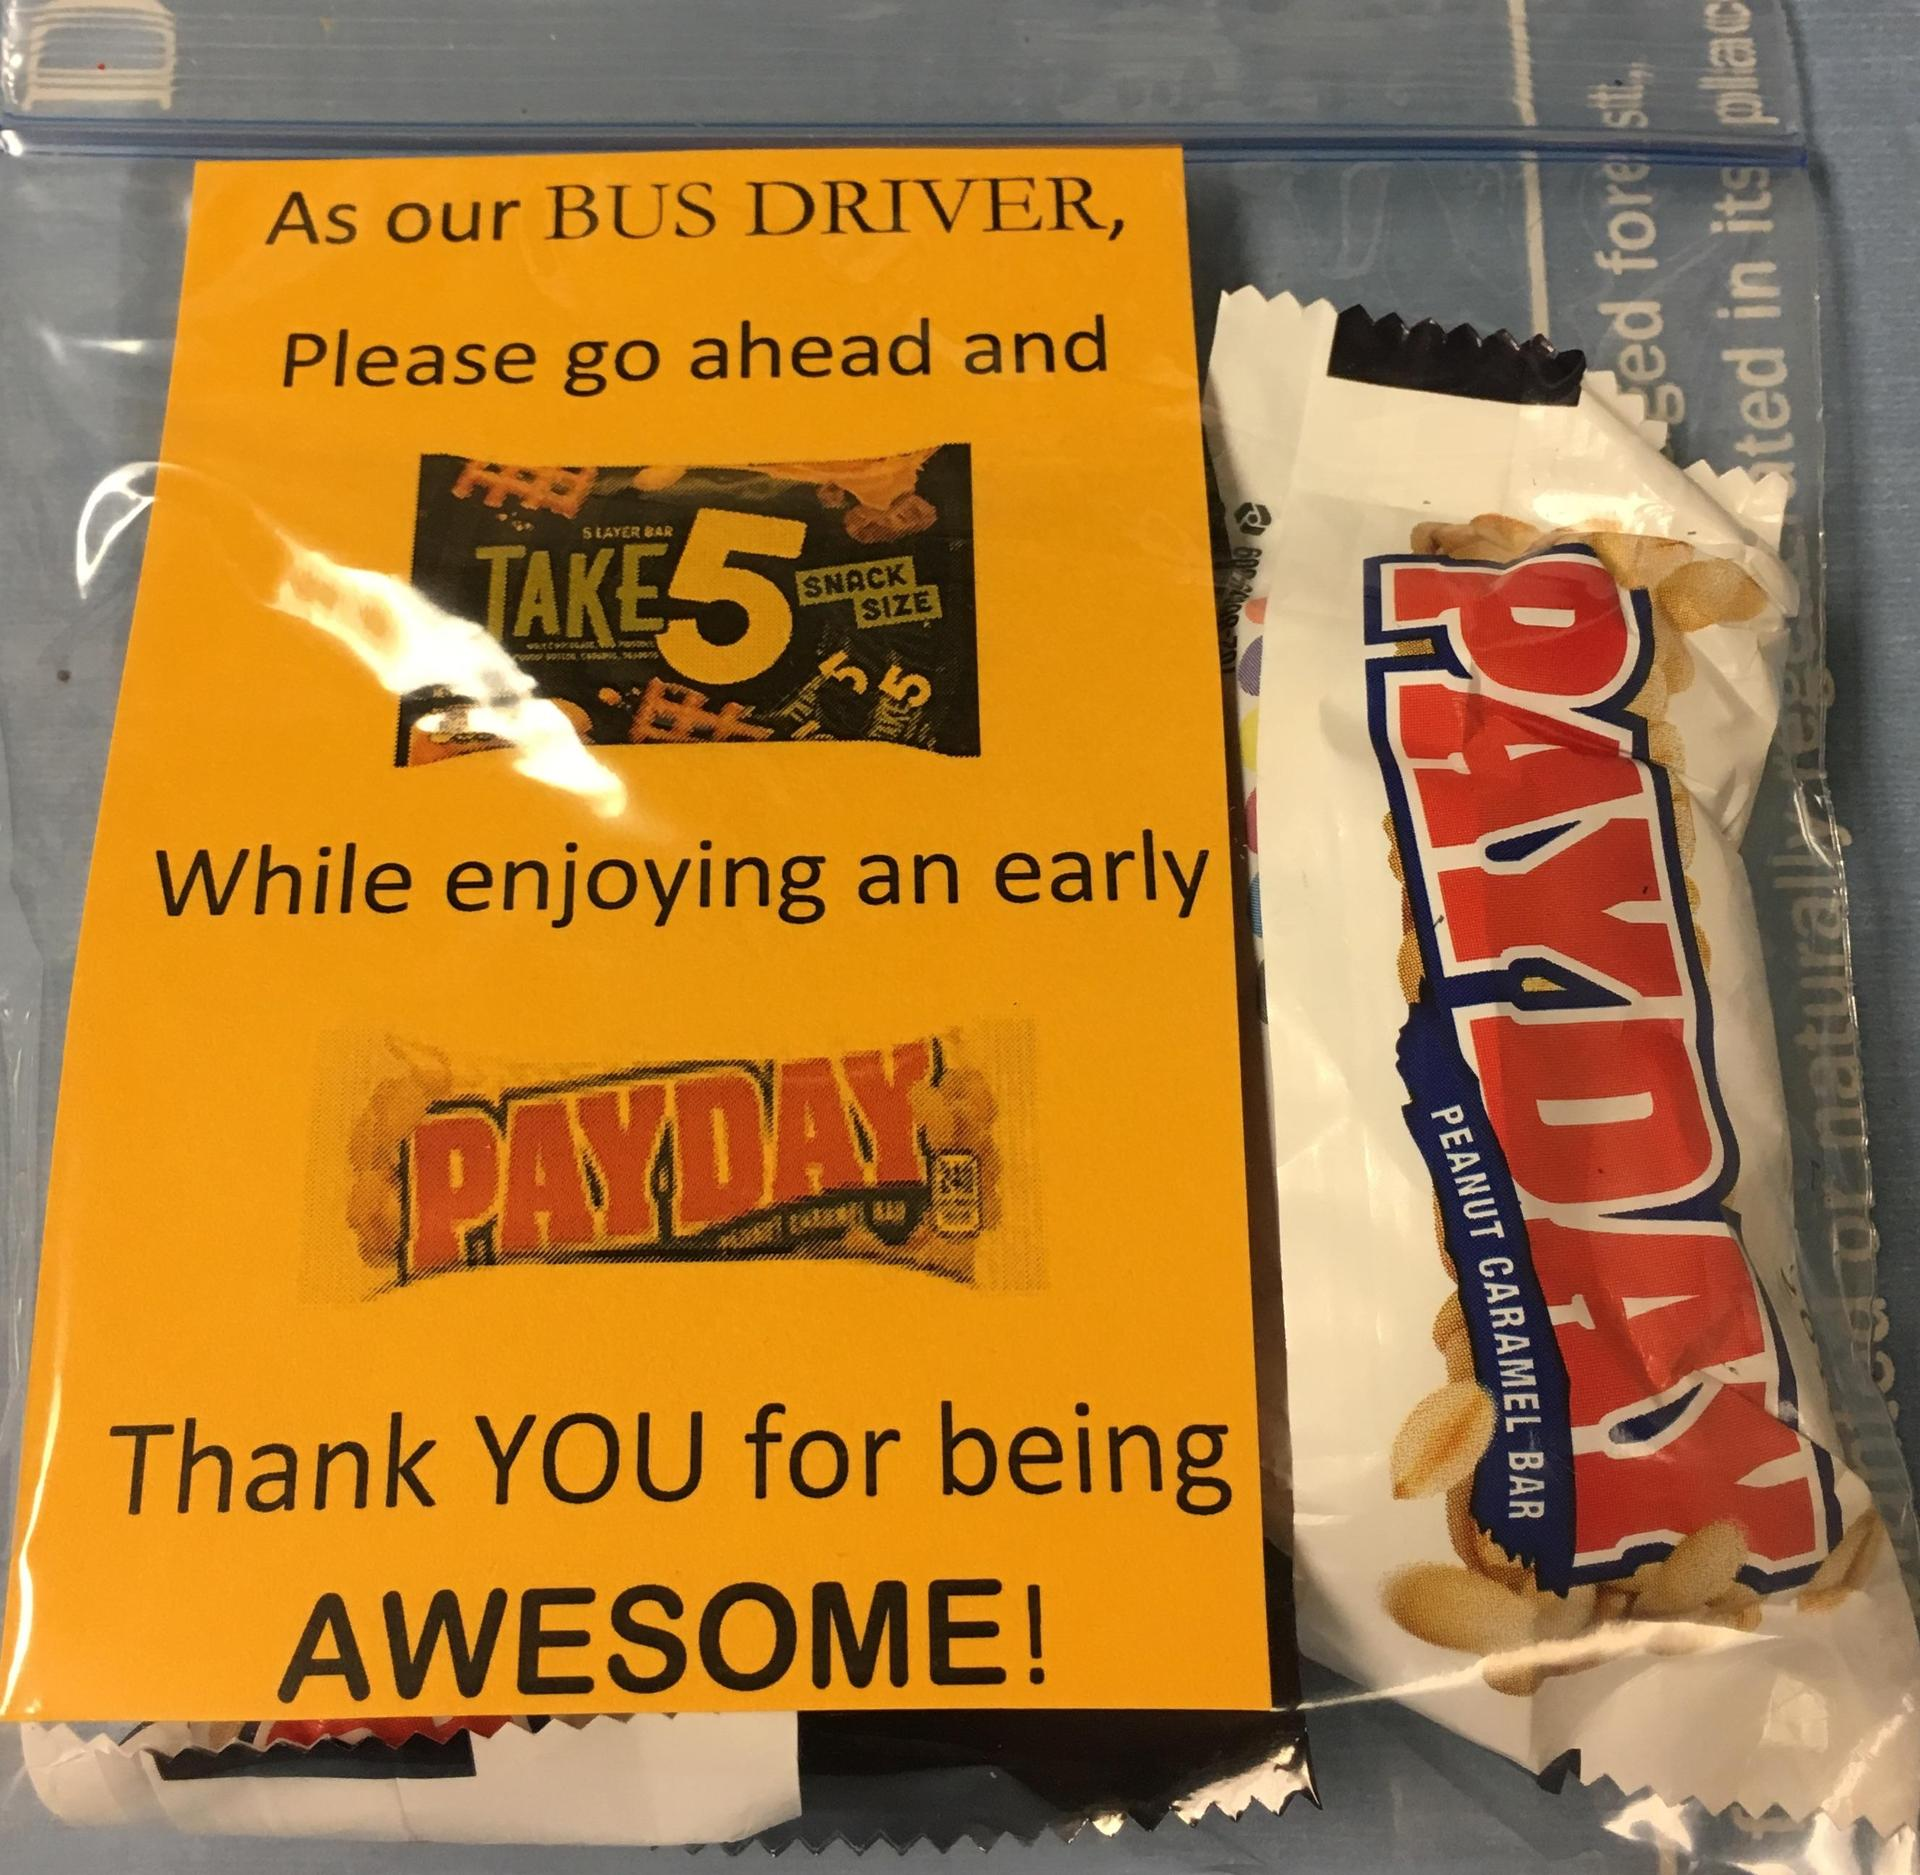 Love the Bus & Bus Driver Appreciation